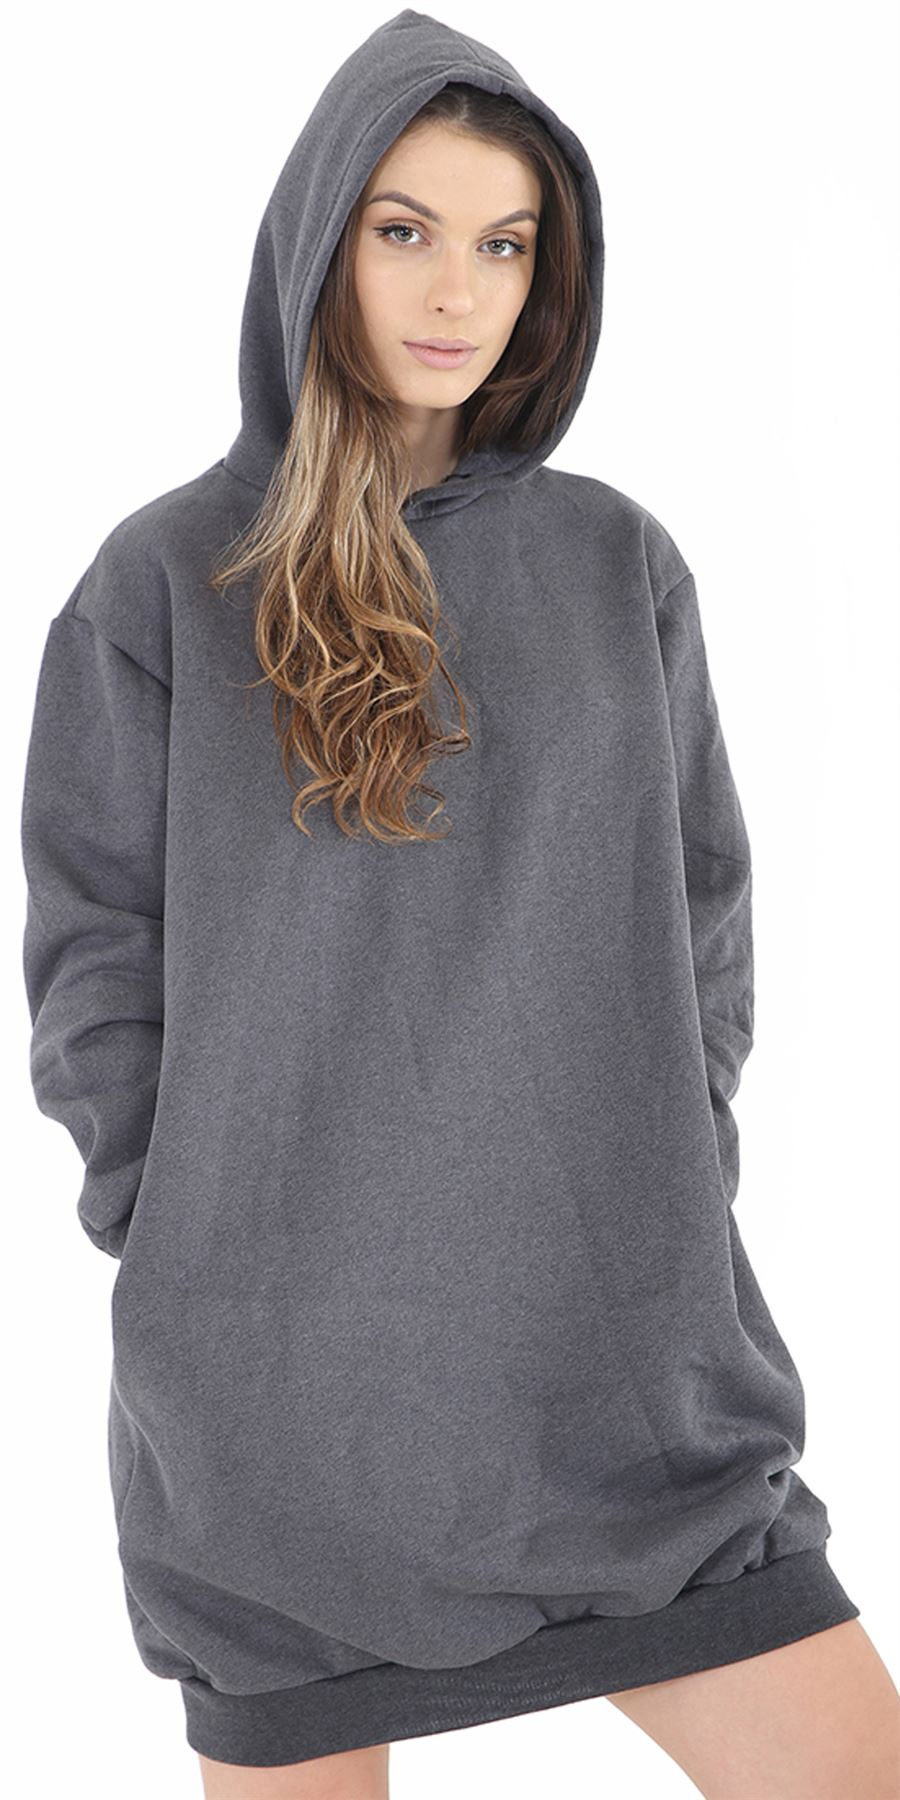 Womens Ladies Girls Oversized Longline Hooded Baggy Sweatshirt Dress ... 54a936c08f